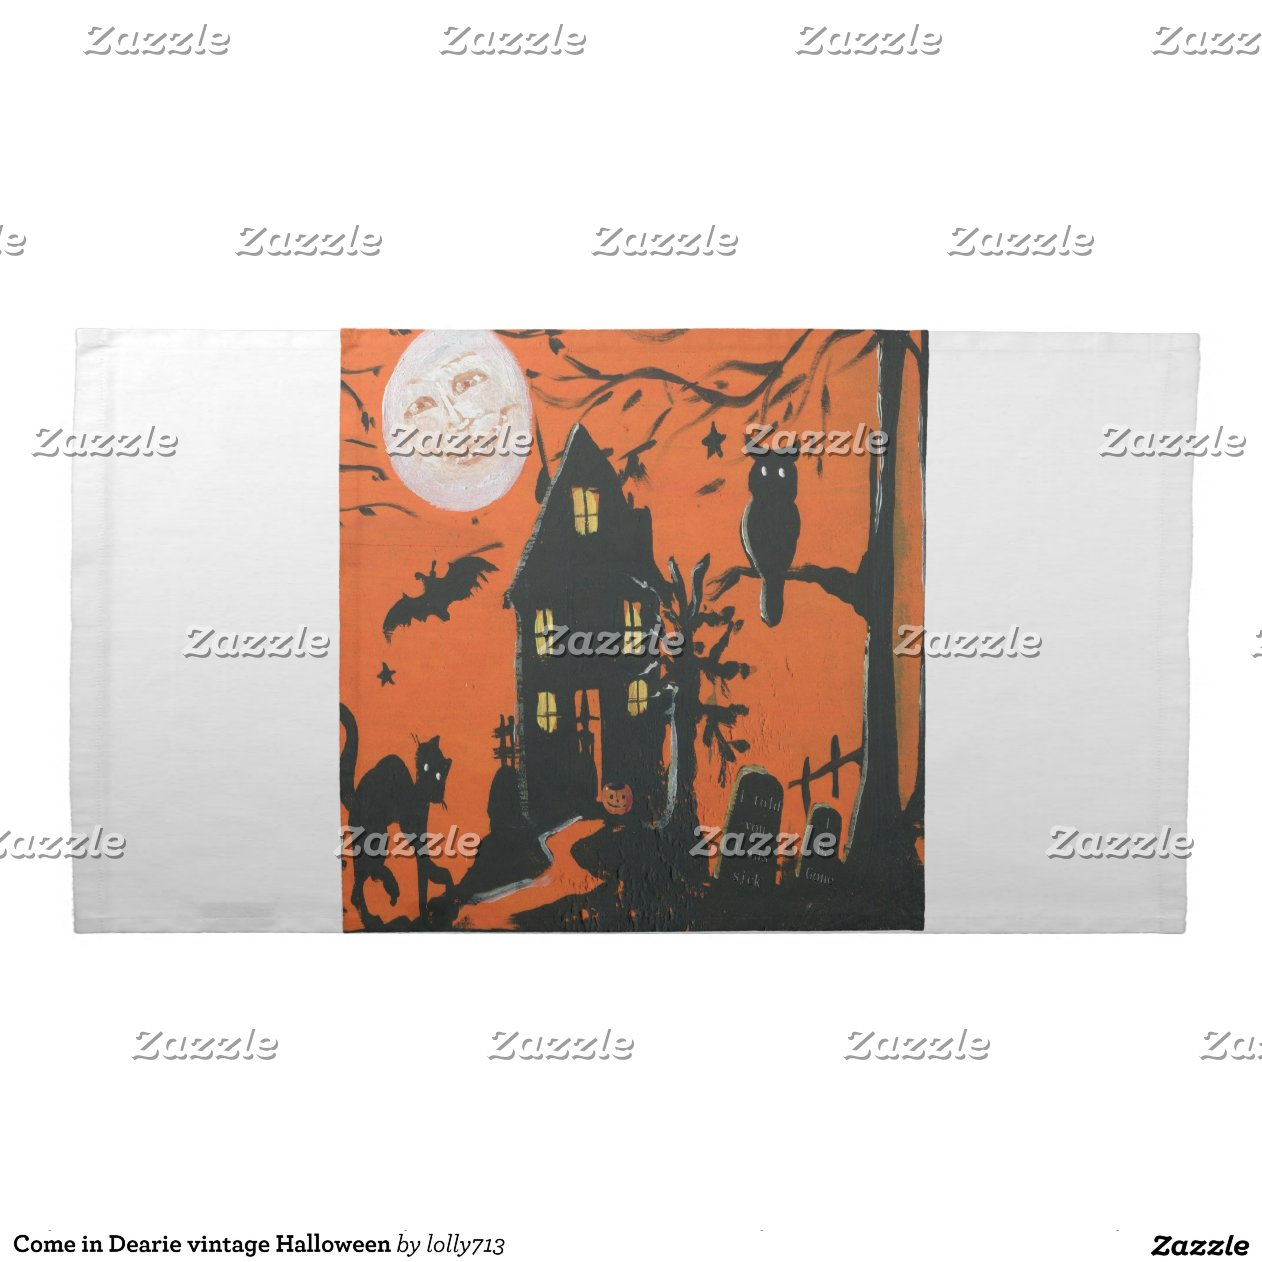 Come in dearie vintage halloween cloth napkins zazzle for Halloween cloth napkins